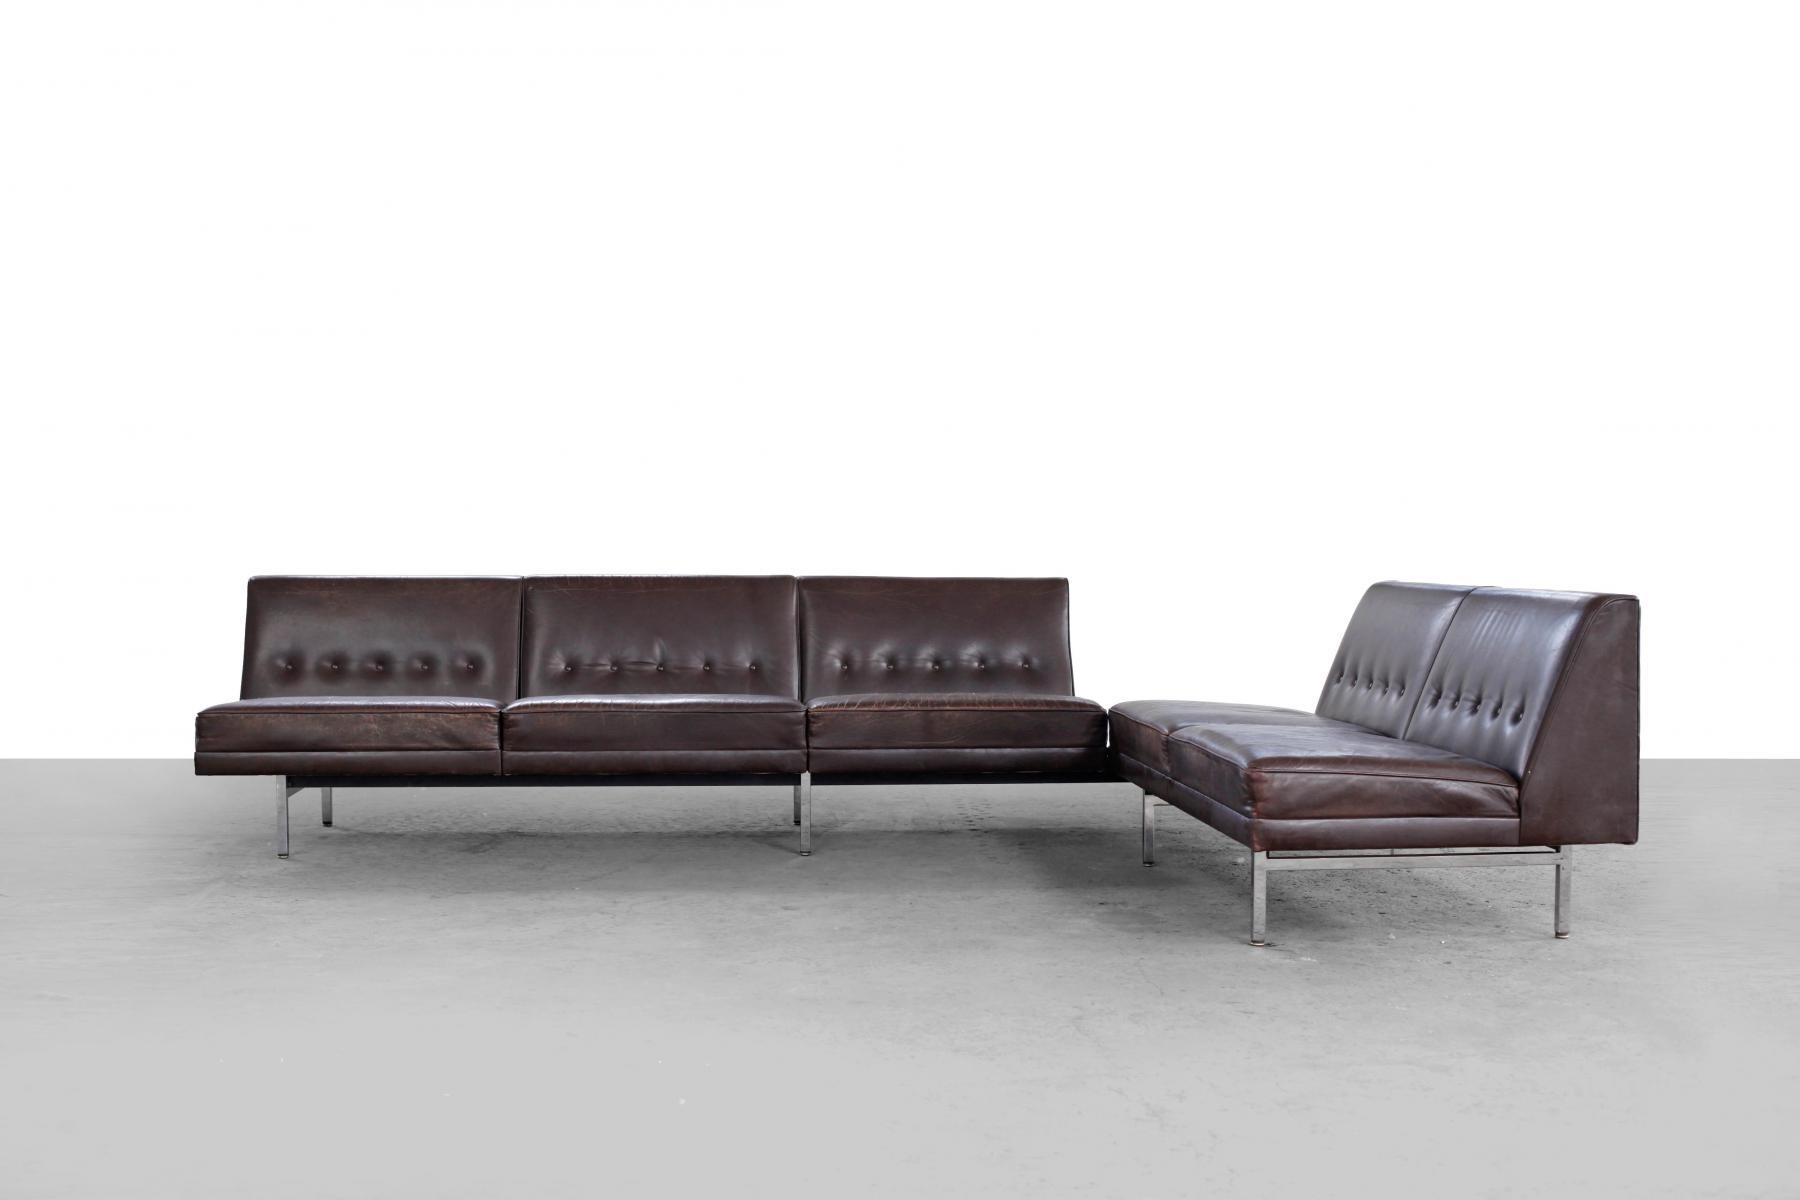 George Nelson Sofa With Inspiration Hd Images 22392 | Kengire With George Nelson Sofas (Image 10 of 20)